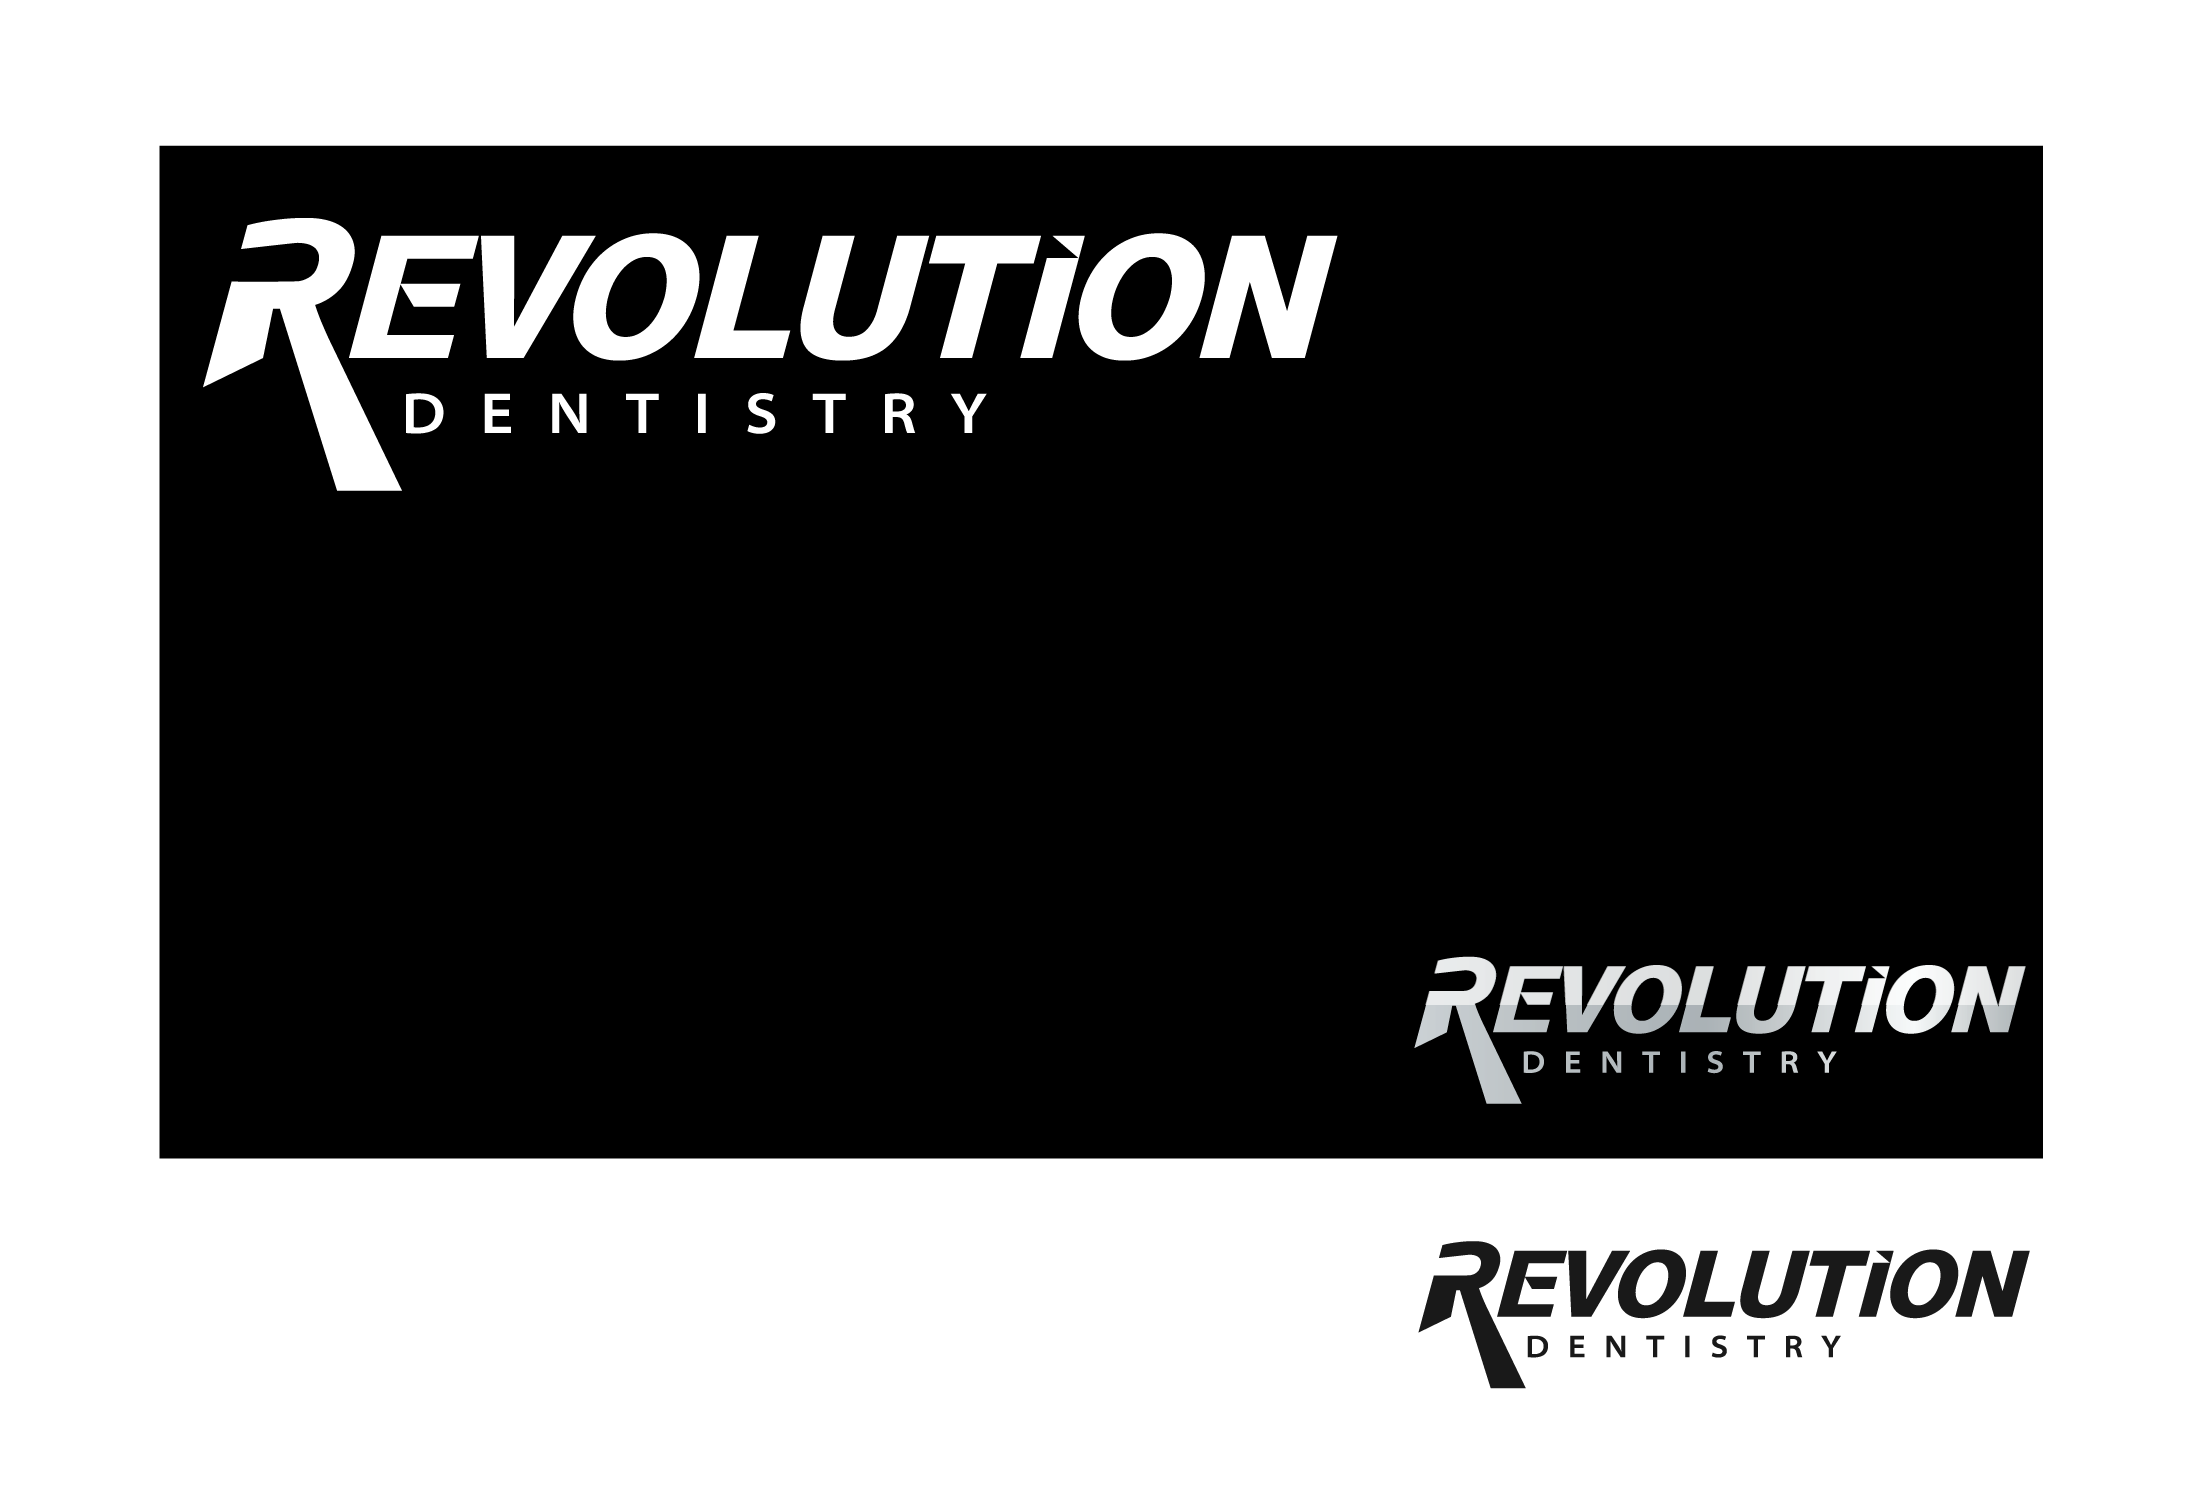 Logo Design by Abhishek Saini - Entry No. 180 in the Logo Design Contest Artistic Logo Design for Revolution Dentistry.